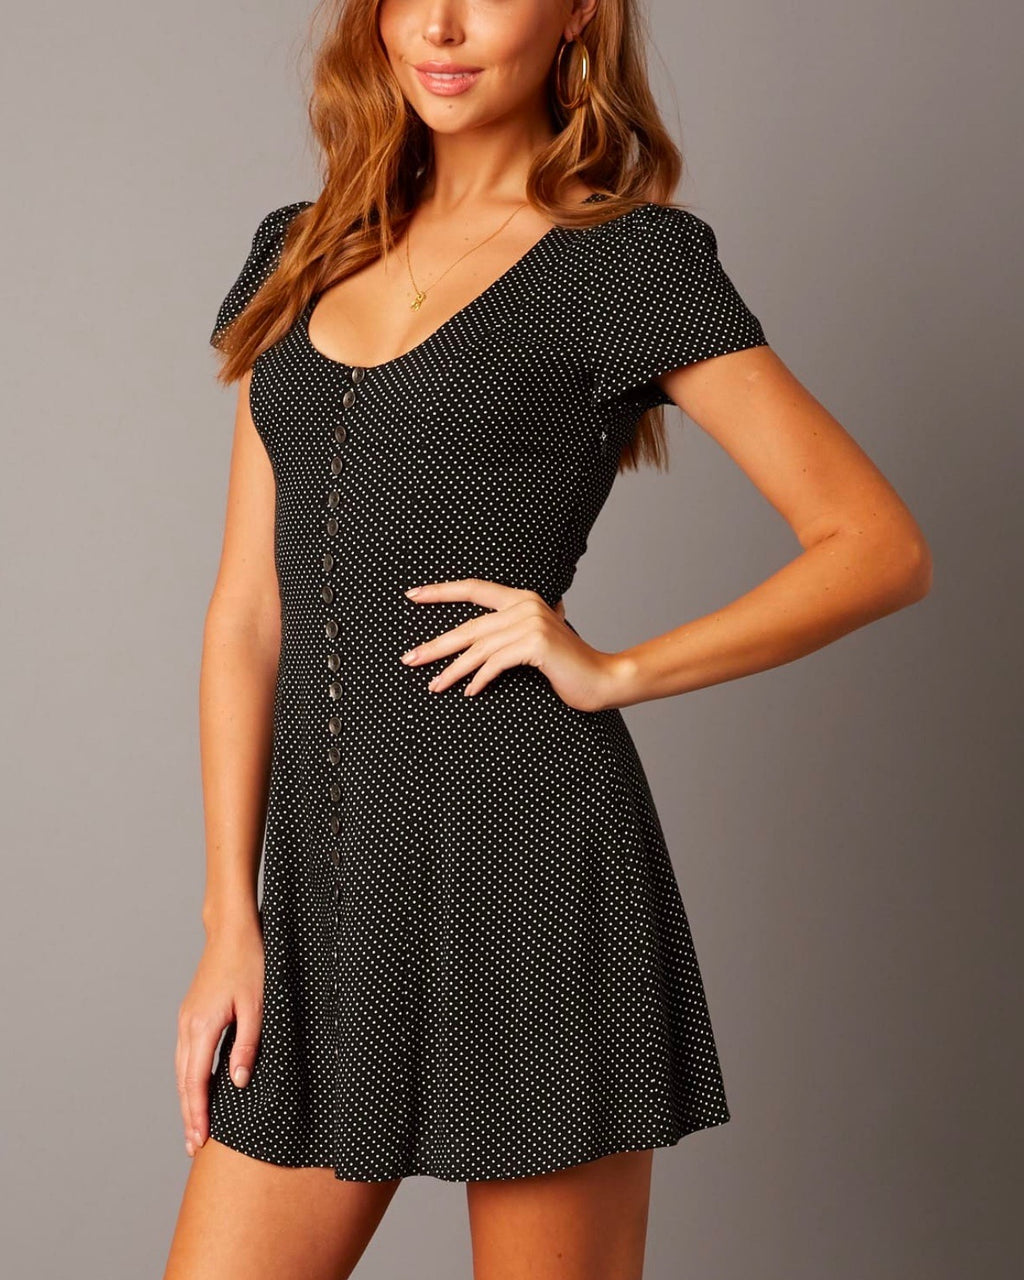 Cotton Candy LA - The Only One Polka Dot Princess Seam Button Down Dress in Black